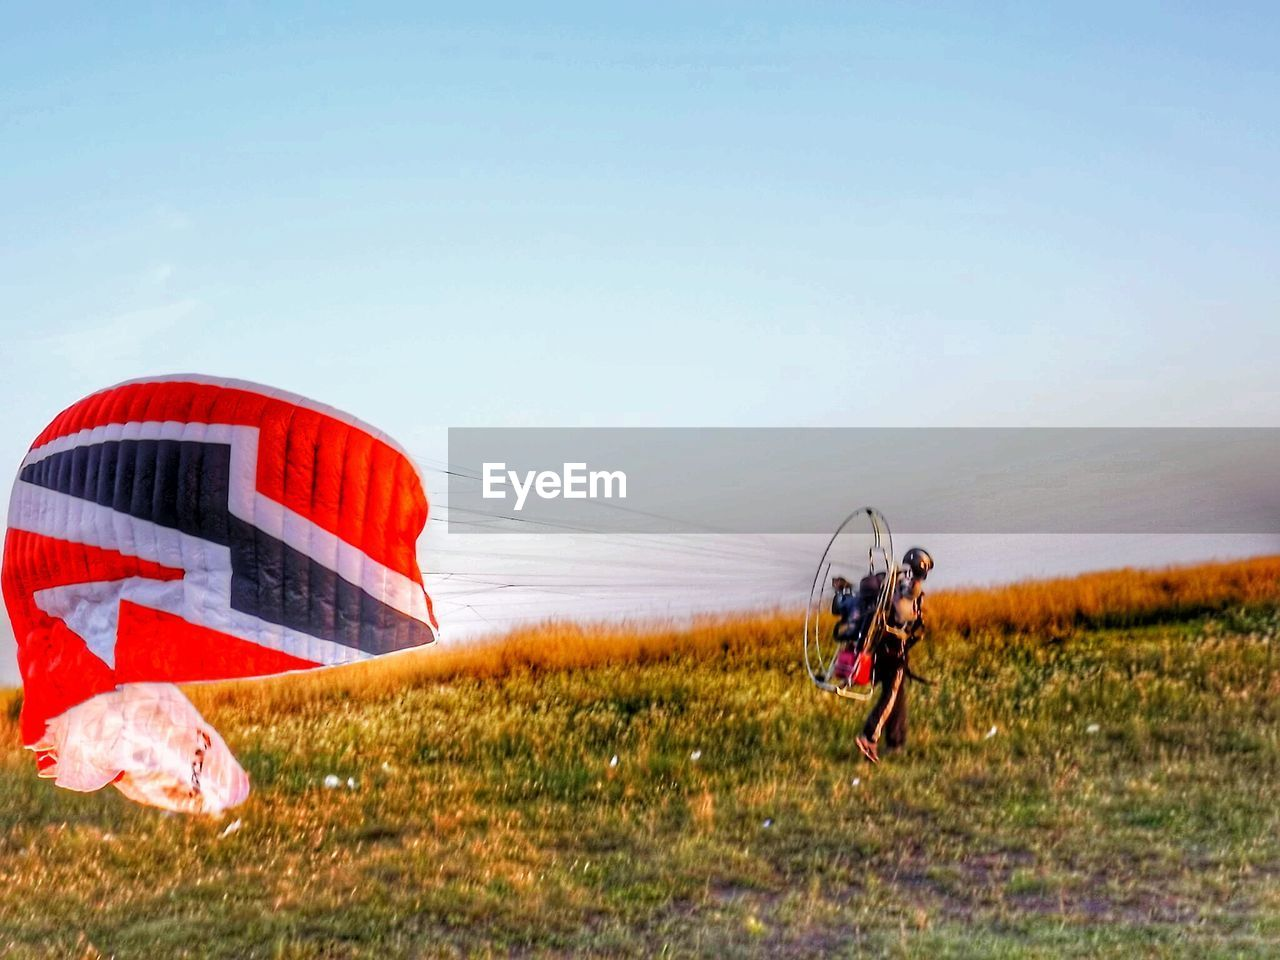 Man with powered parachute on grassy field against clear sky during sunset